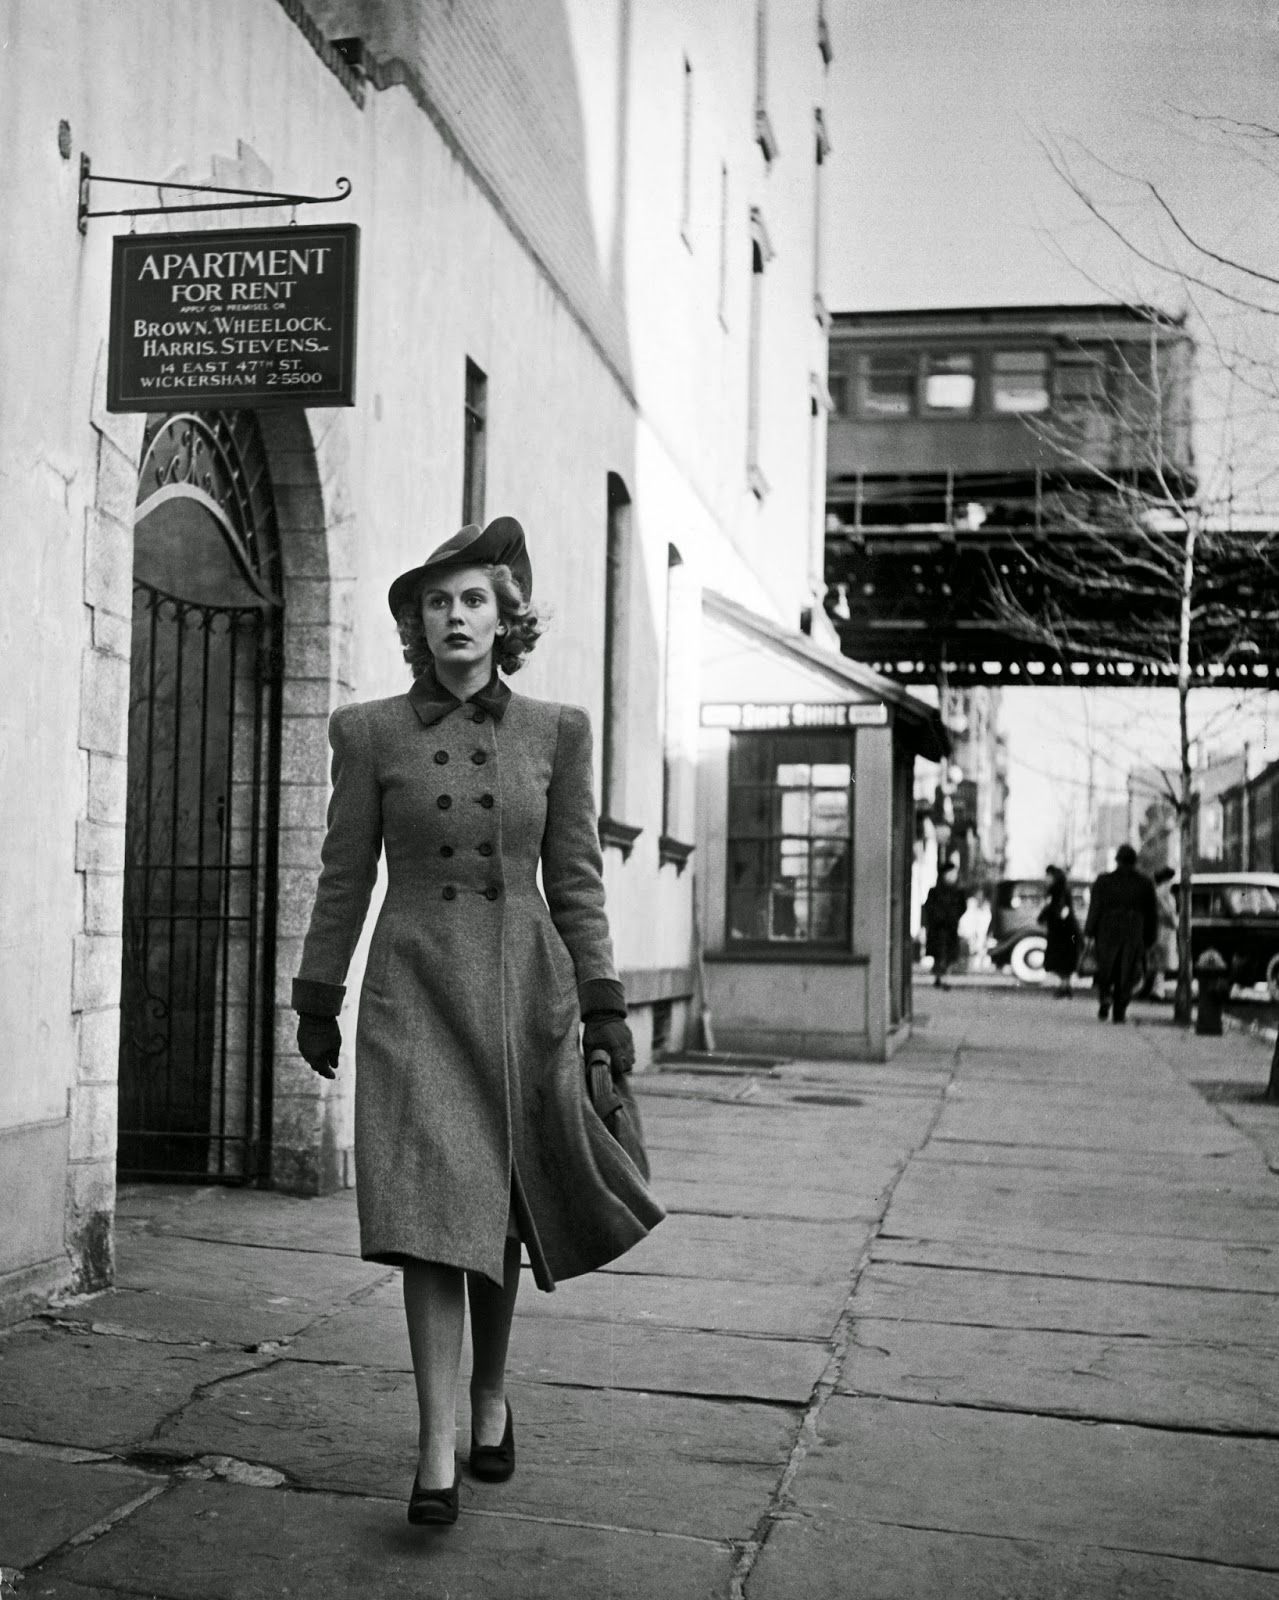 Essay 1940 S Fashion: A Day In The Life Of A Working Girl In 1940